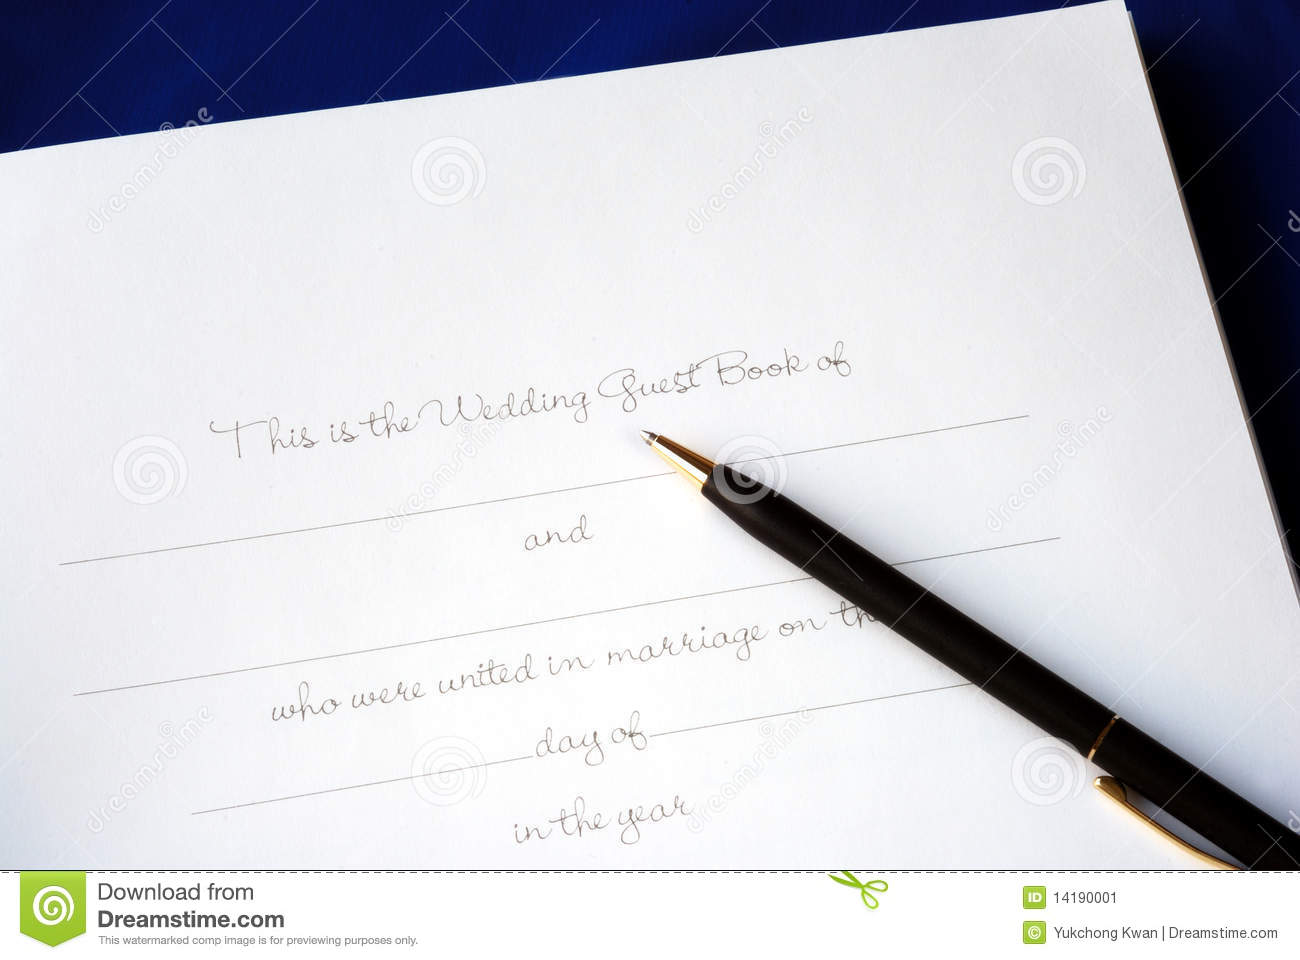 The First Page Of A Wedding Guest Book Stock Image  Image 14190001